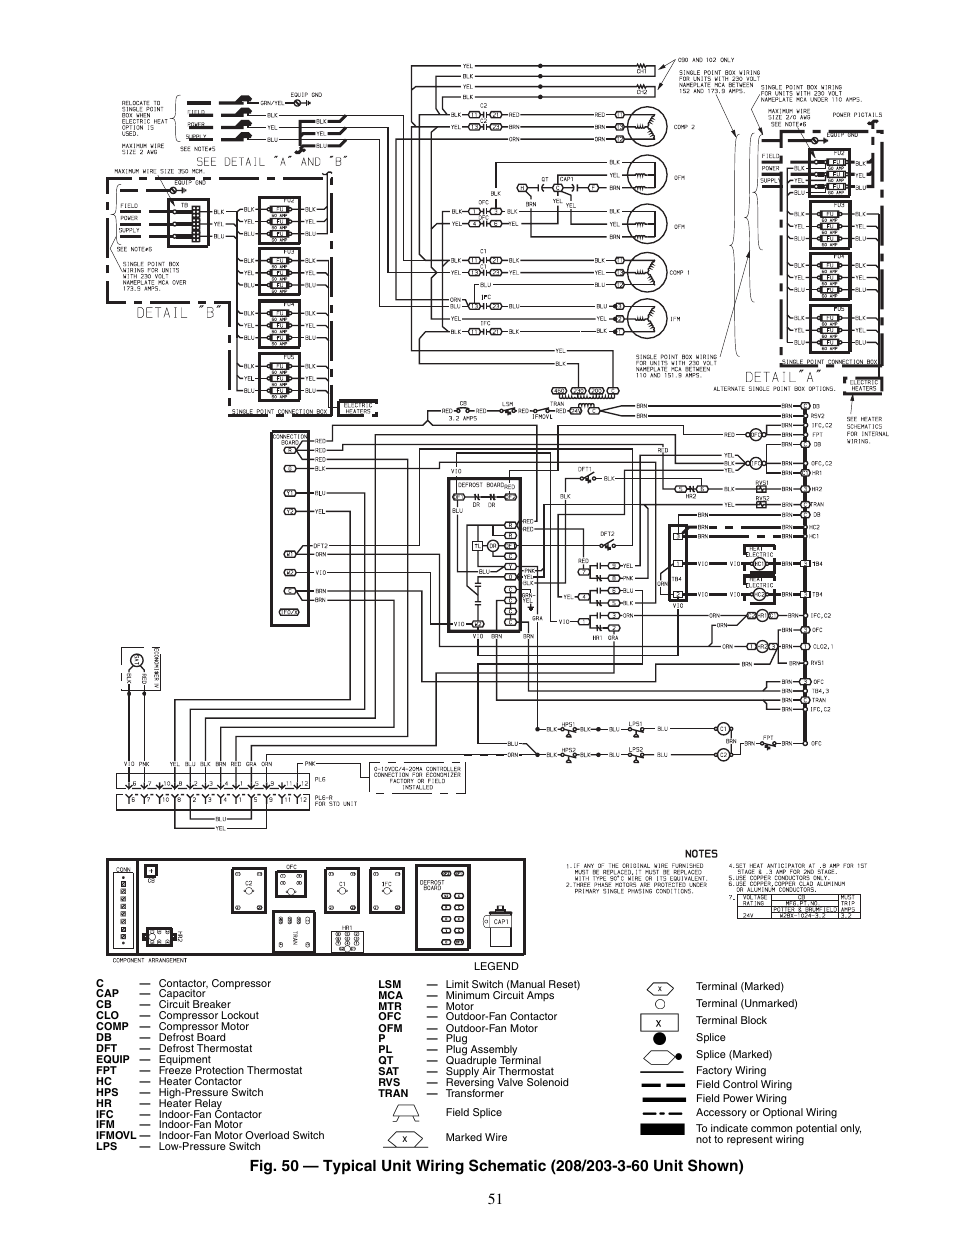 defrost thermostat wiring schematic legend 06 f450 fuse